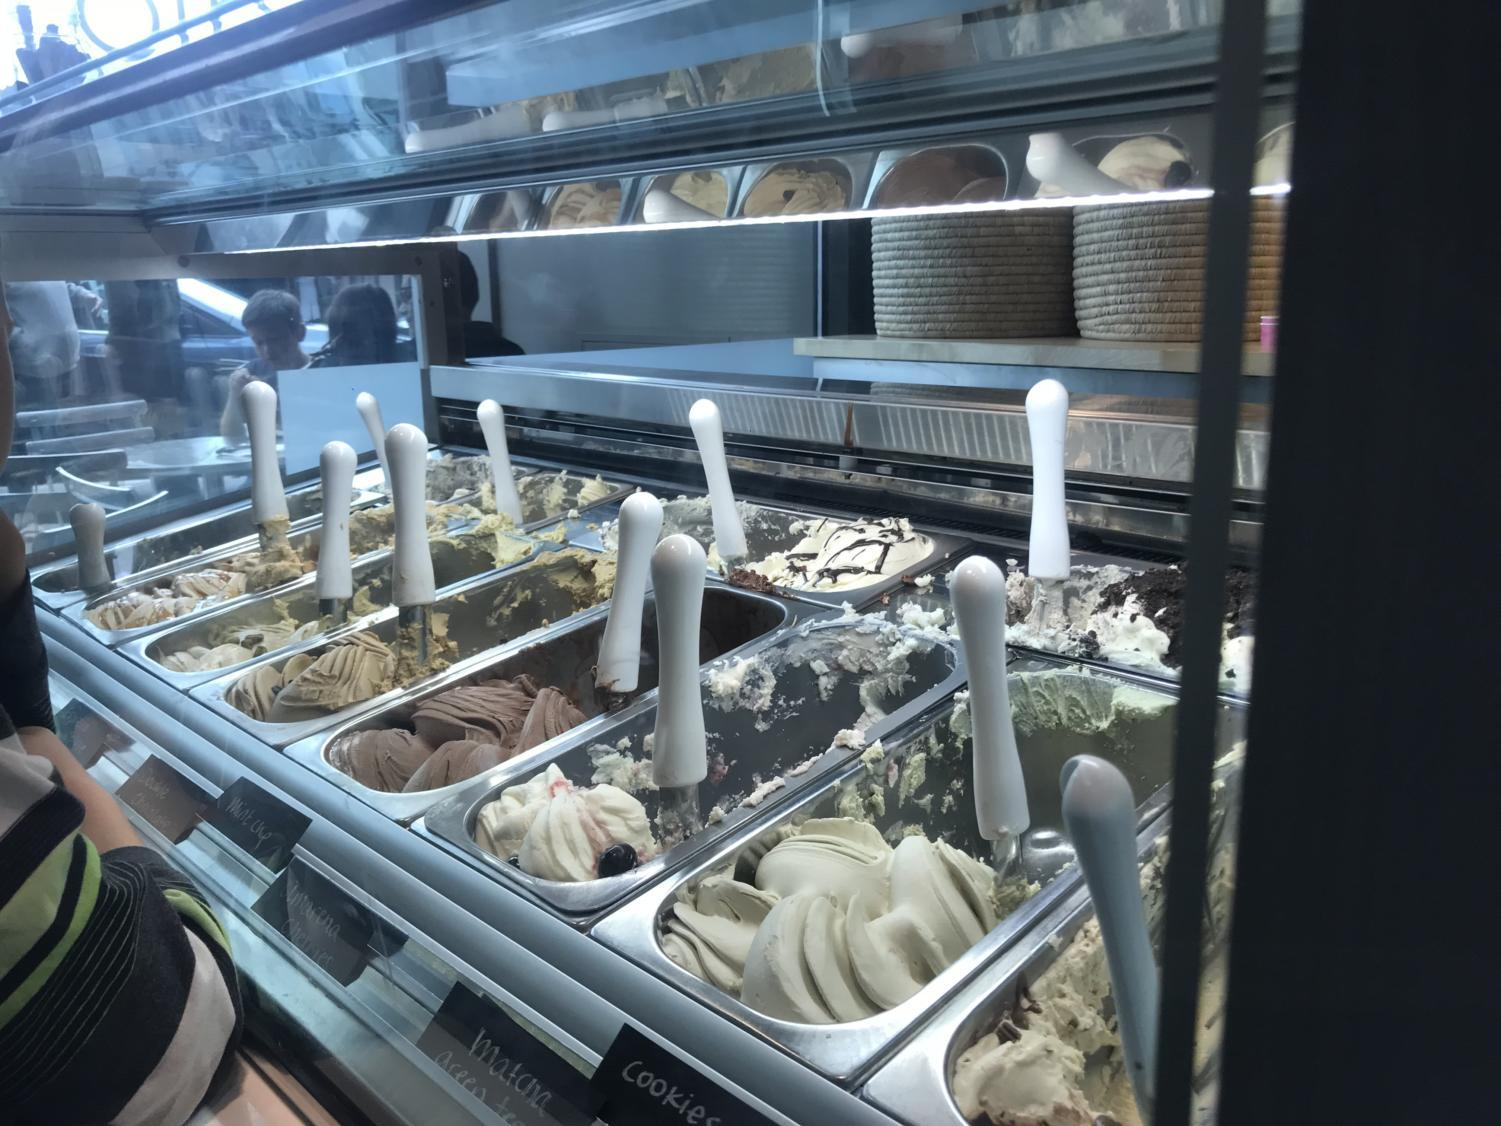 Gelataio opens its doors to downtown San Carlos, serving a variety of flavors of gelato and sorbetto.